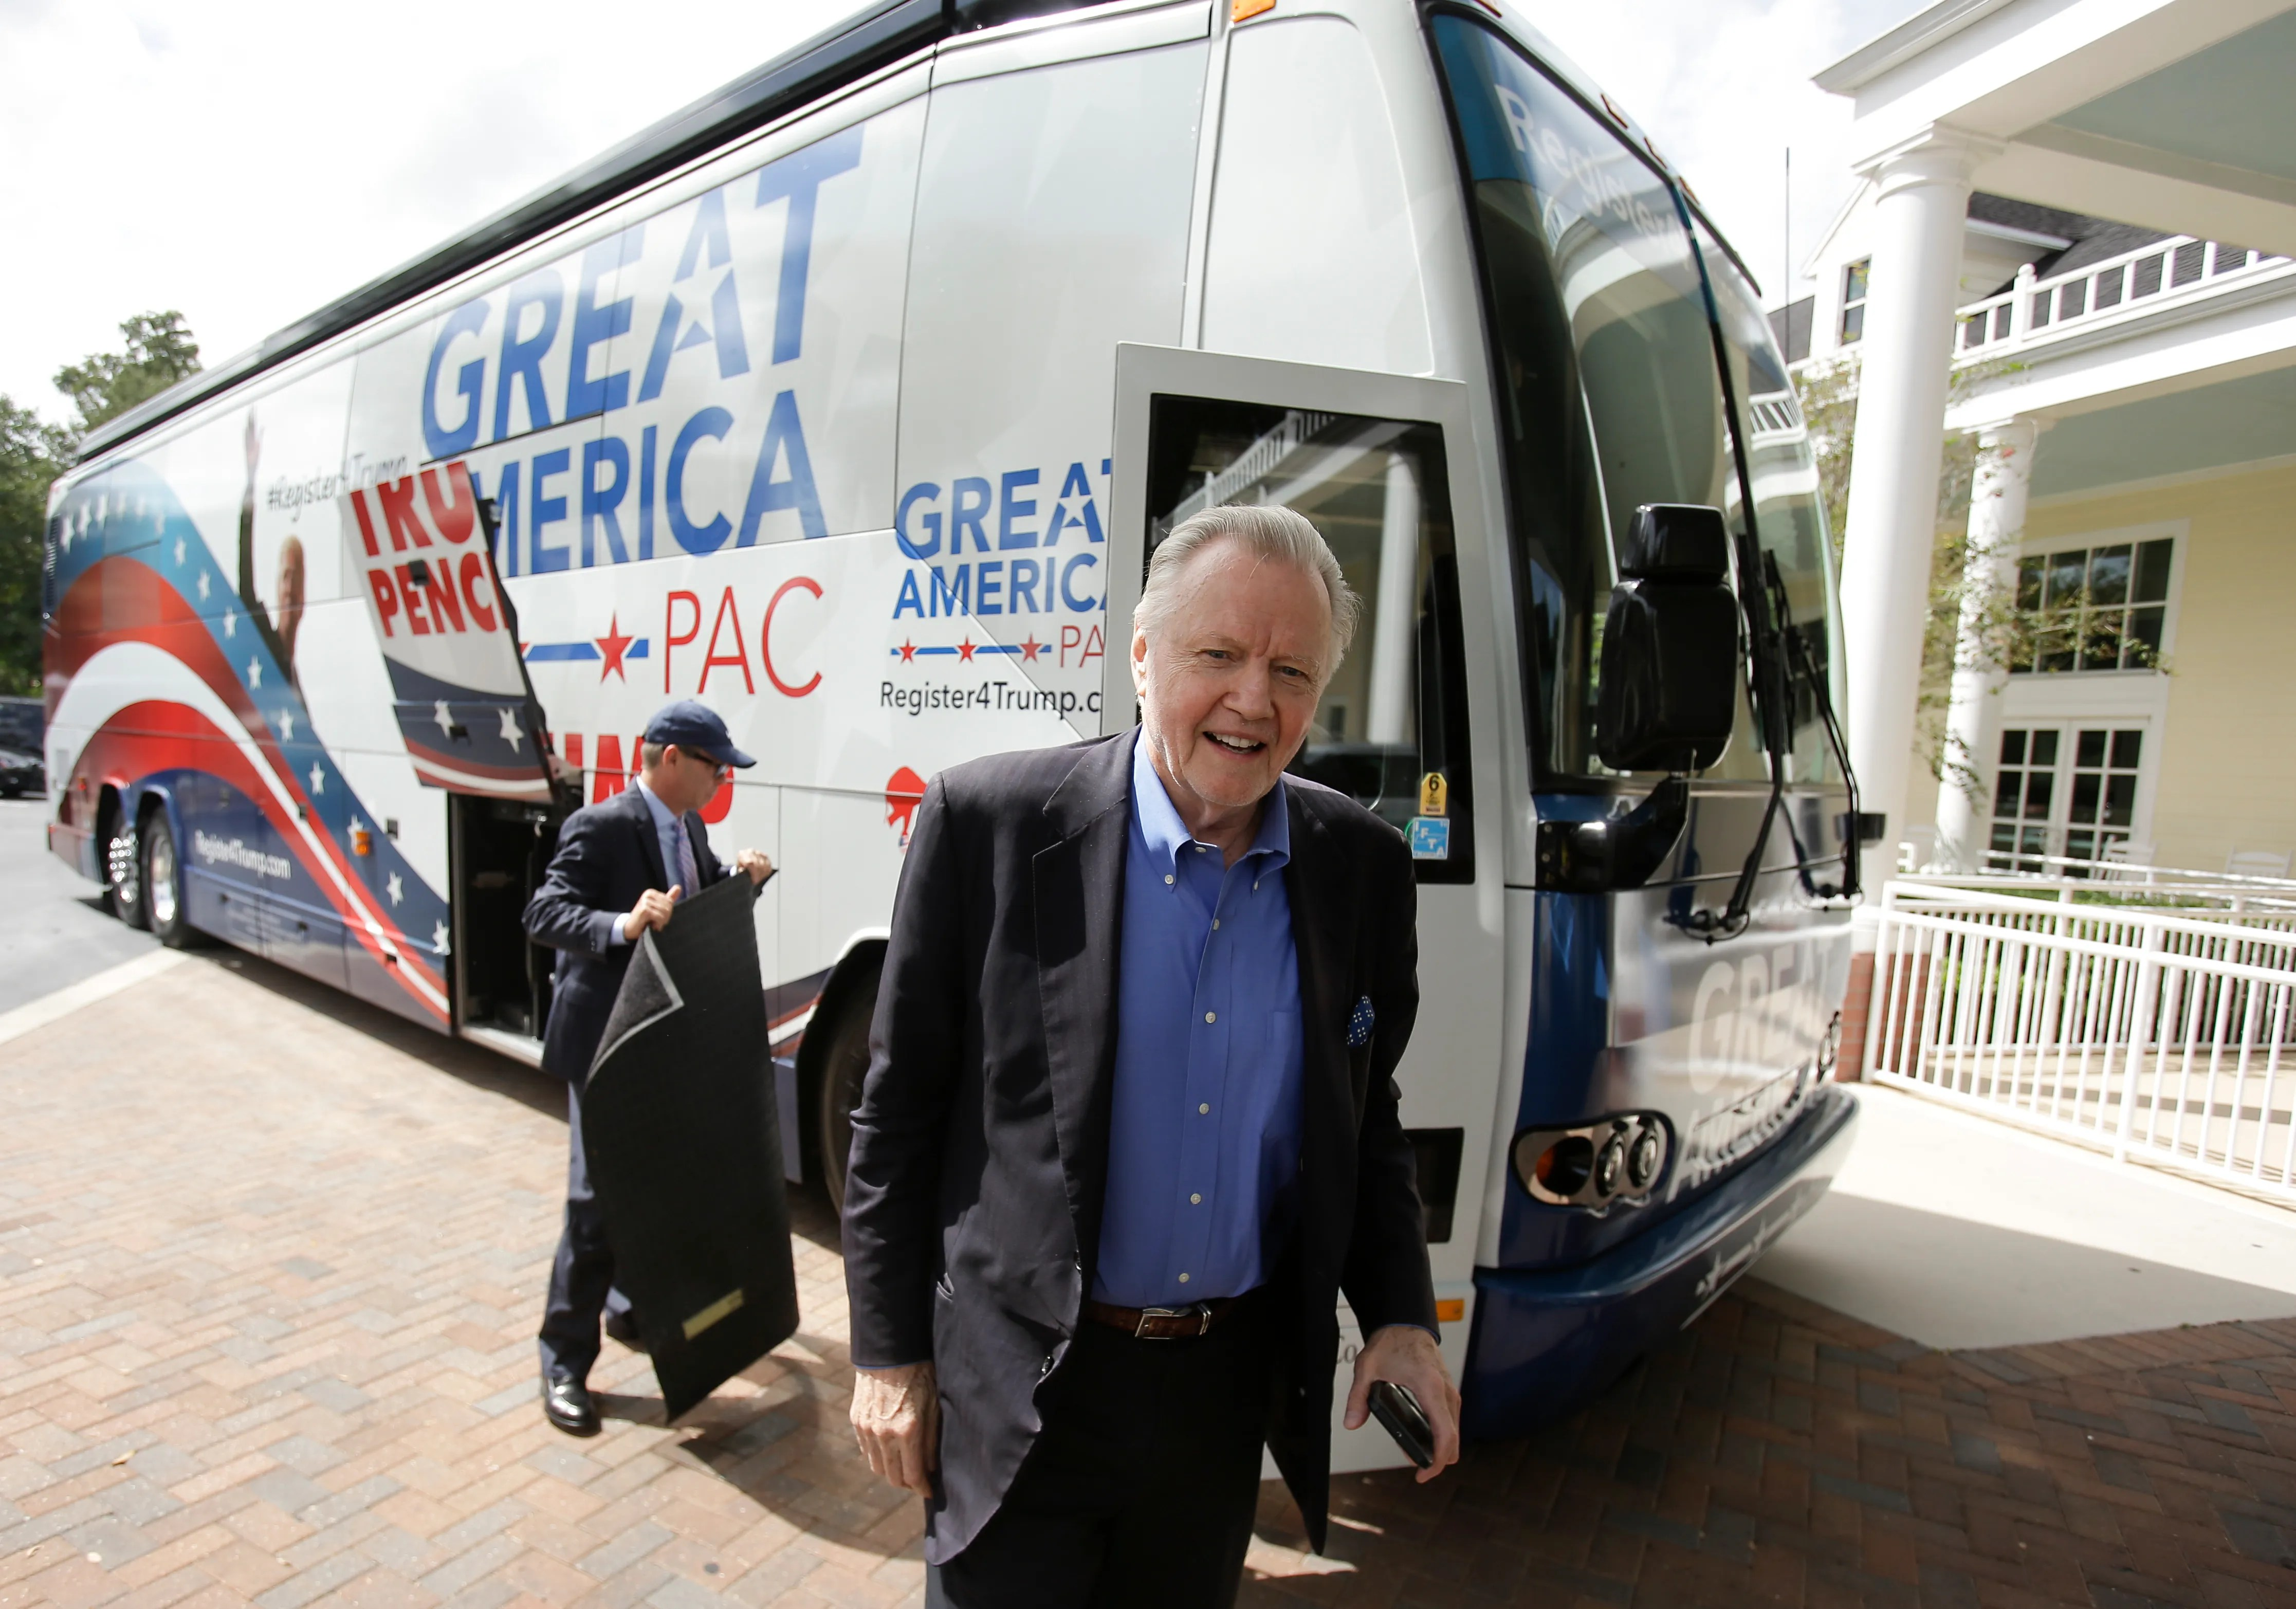 In this Monday, Sept. 12, 2016 photo, conservative actor and Donald Trump supporter Jon Voight arrives on the Great America PAC bus for a town hall meeting in Lake Mary, Fla. (AP Photo/John Raoux)